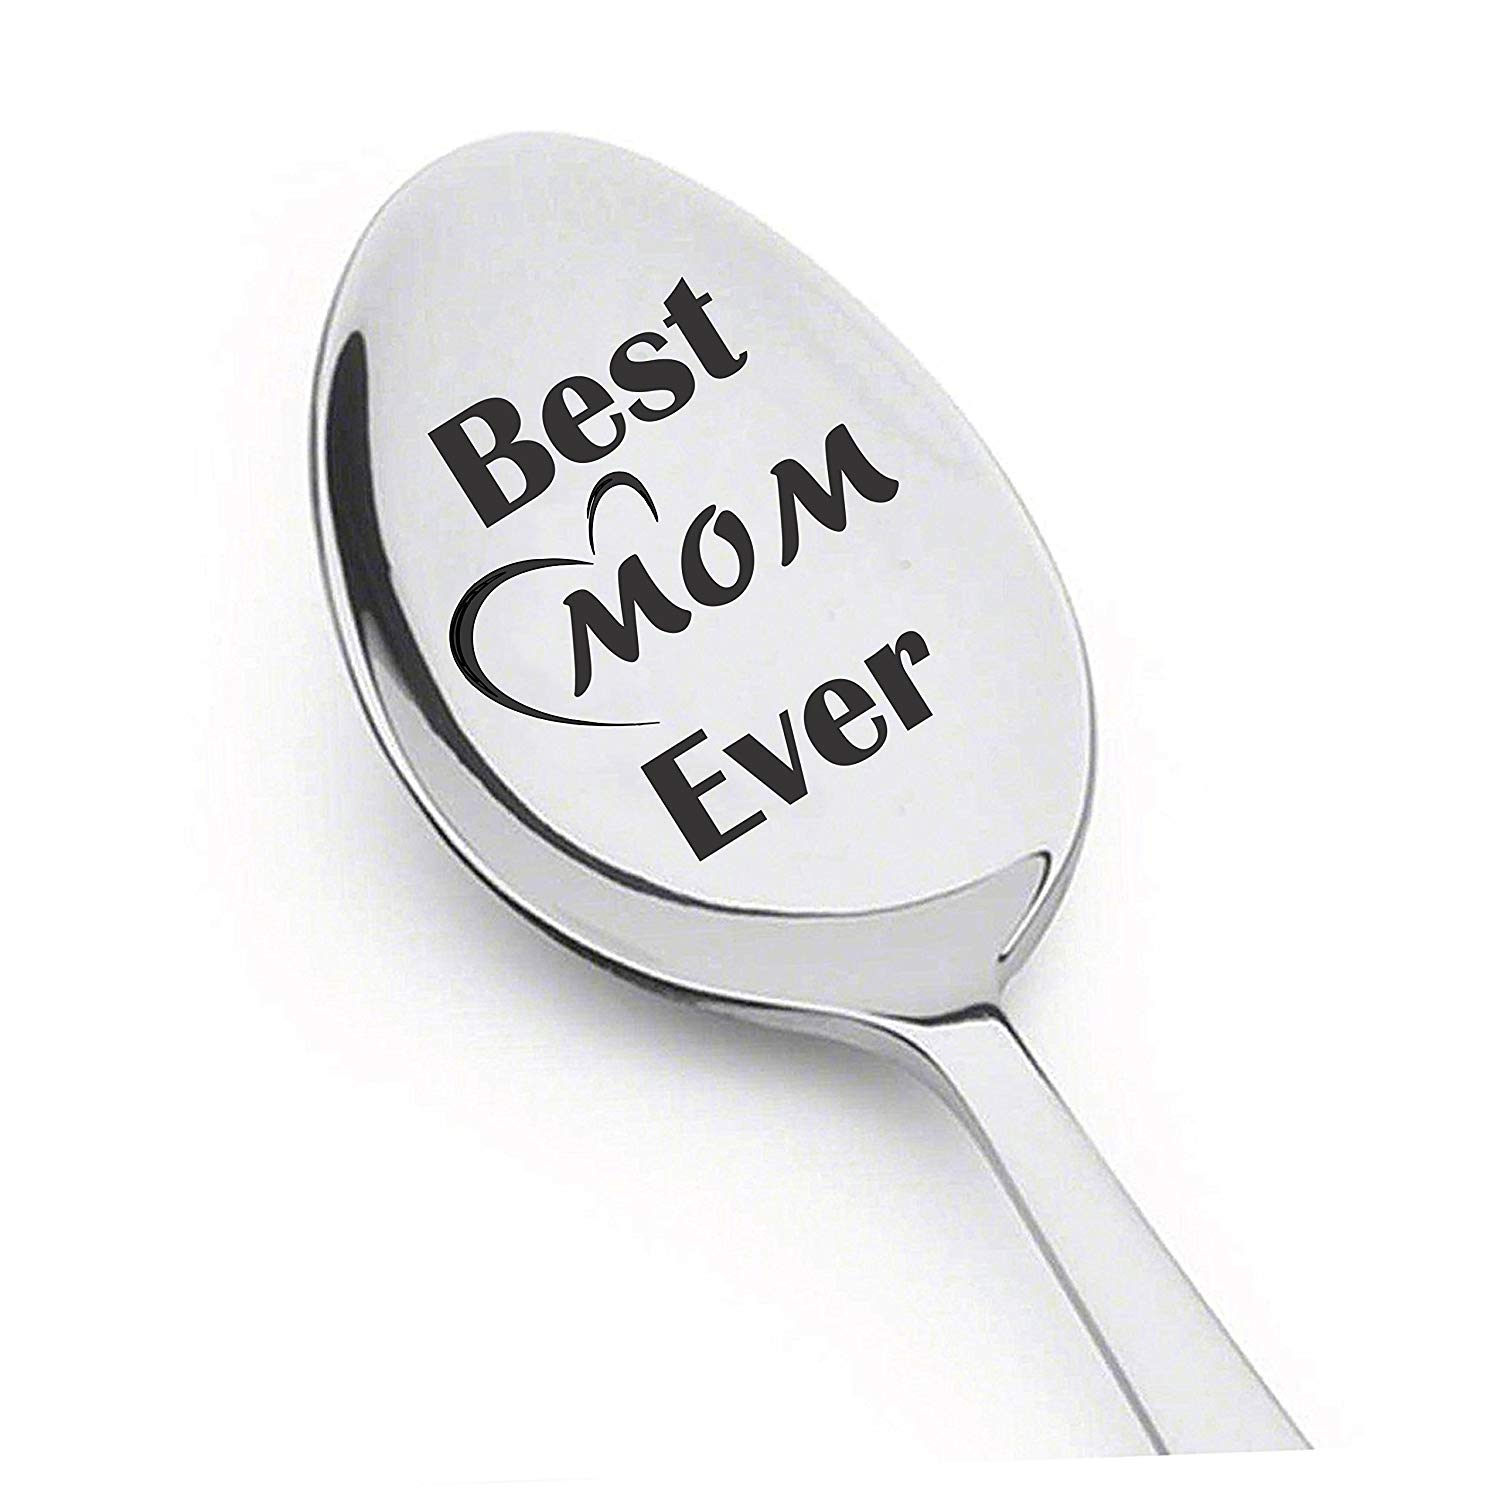 Best Mom Ever Spoon - Christmas/Birthday/Mother's Day Gift For Women, Wife, Granny & Mom! 8 Inch perfectly designed Stainless Steel Spoon. Gifts under 10